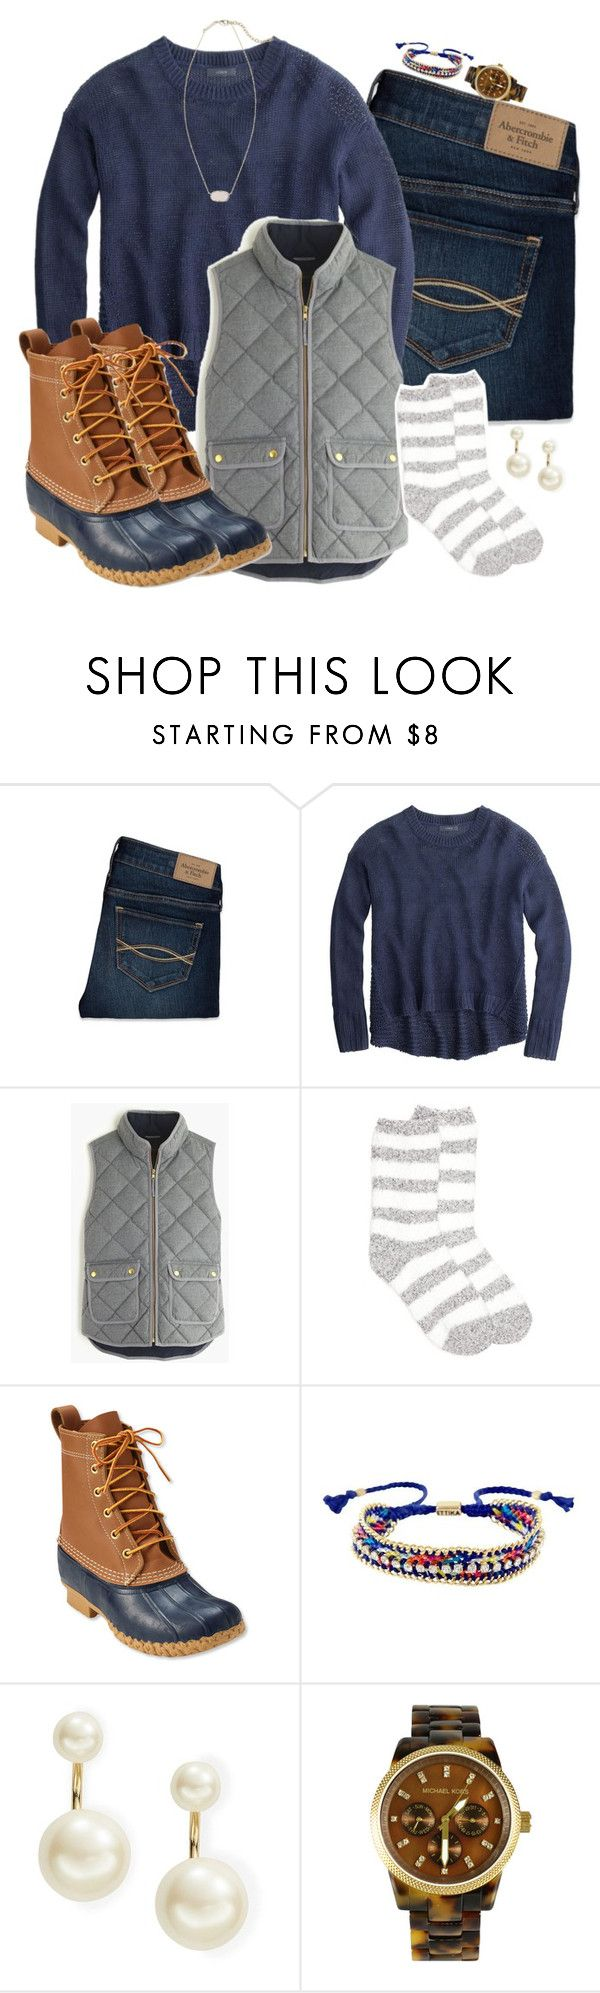 """""""I really want it to snow!!"""" by keileeen ❤ liked on Polyvore featuring Abercrombie & Fitch, J.Crew, New Directions, L.L.Bean, Ettika, Kate Spade, Michael Kors and Kendra Scott"""